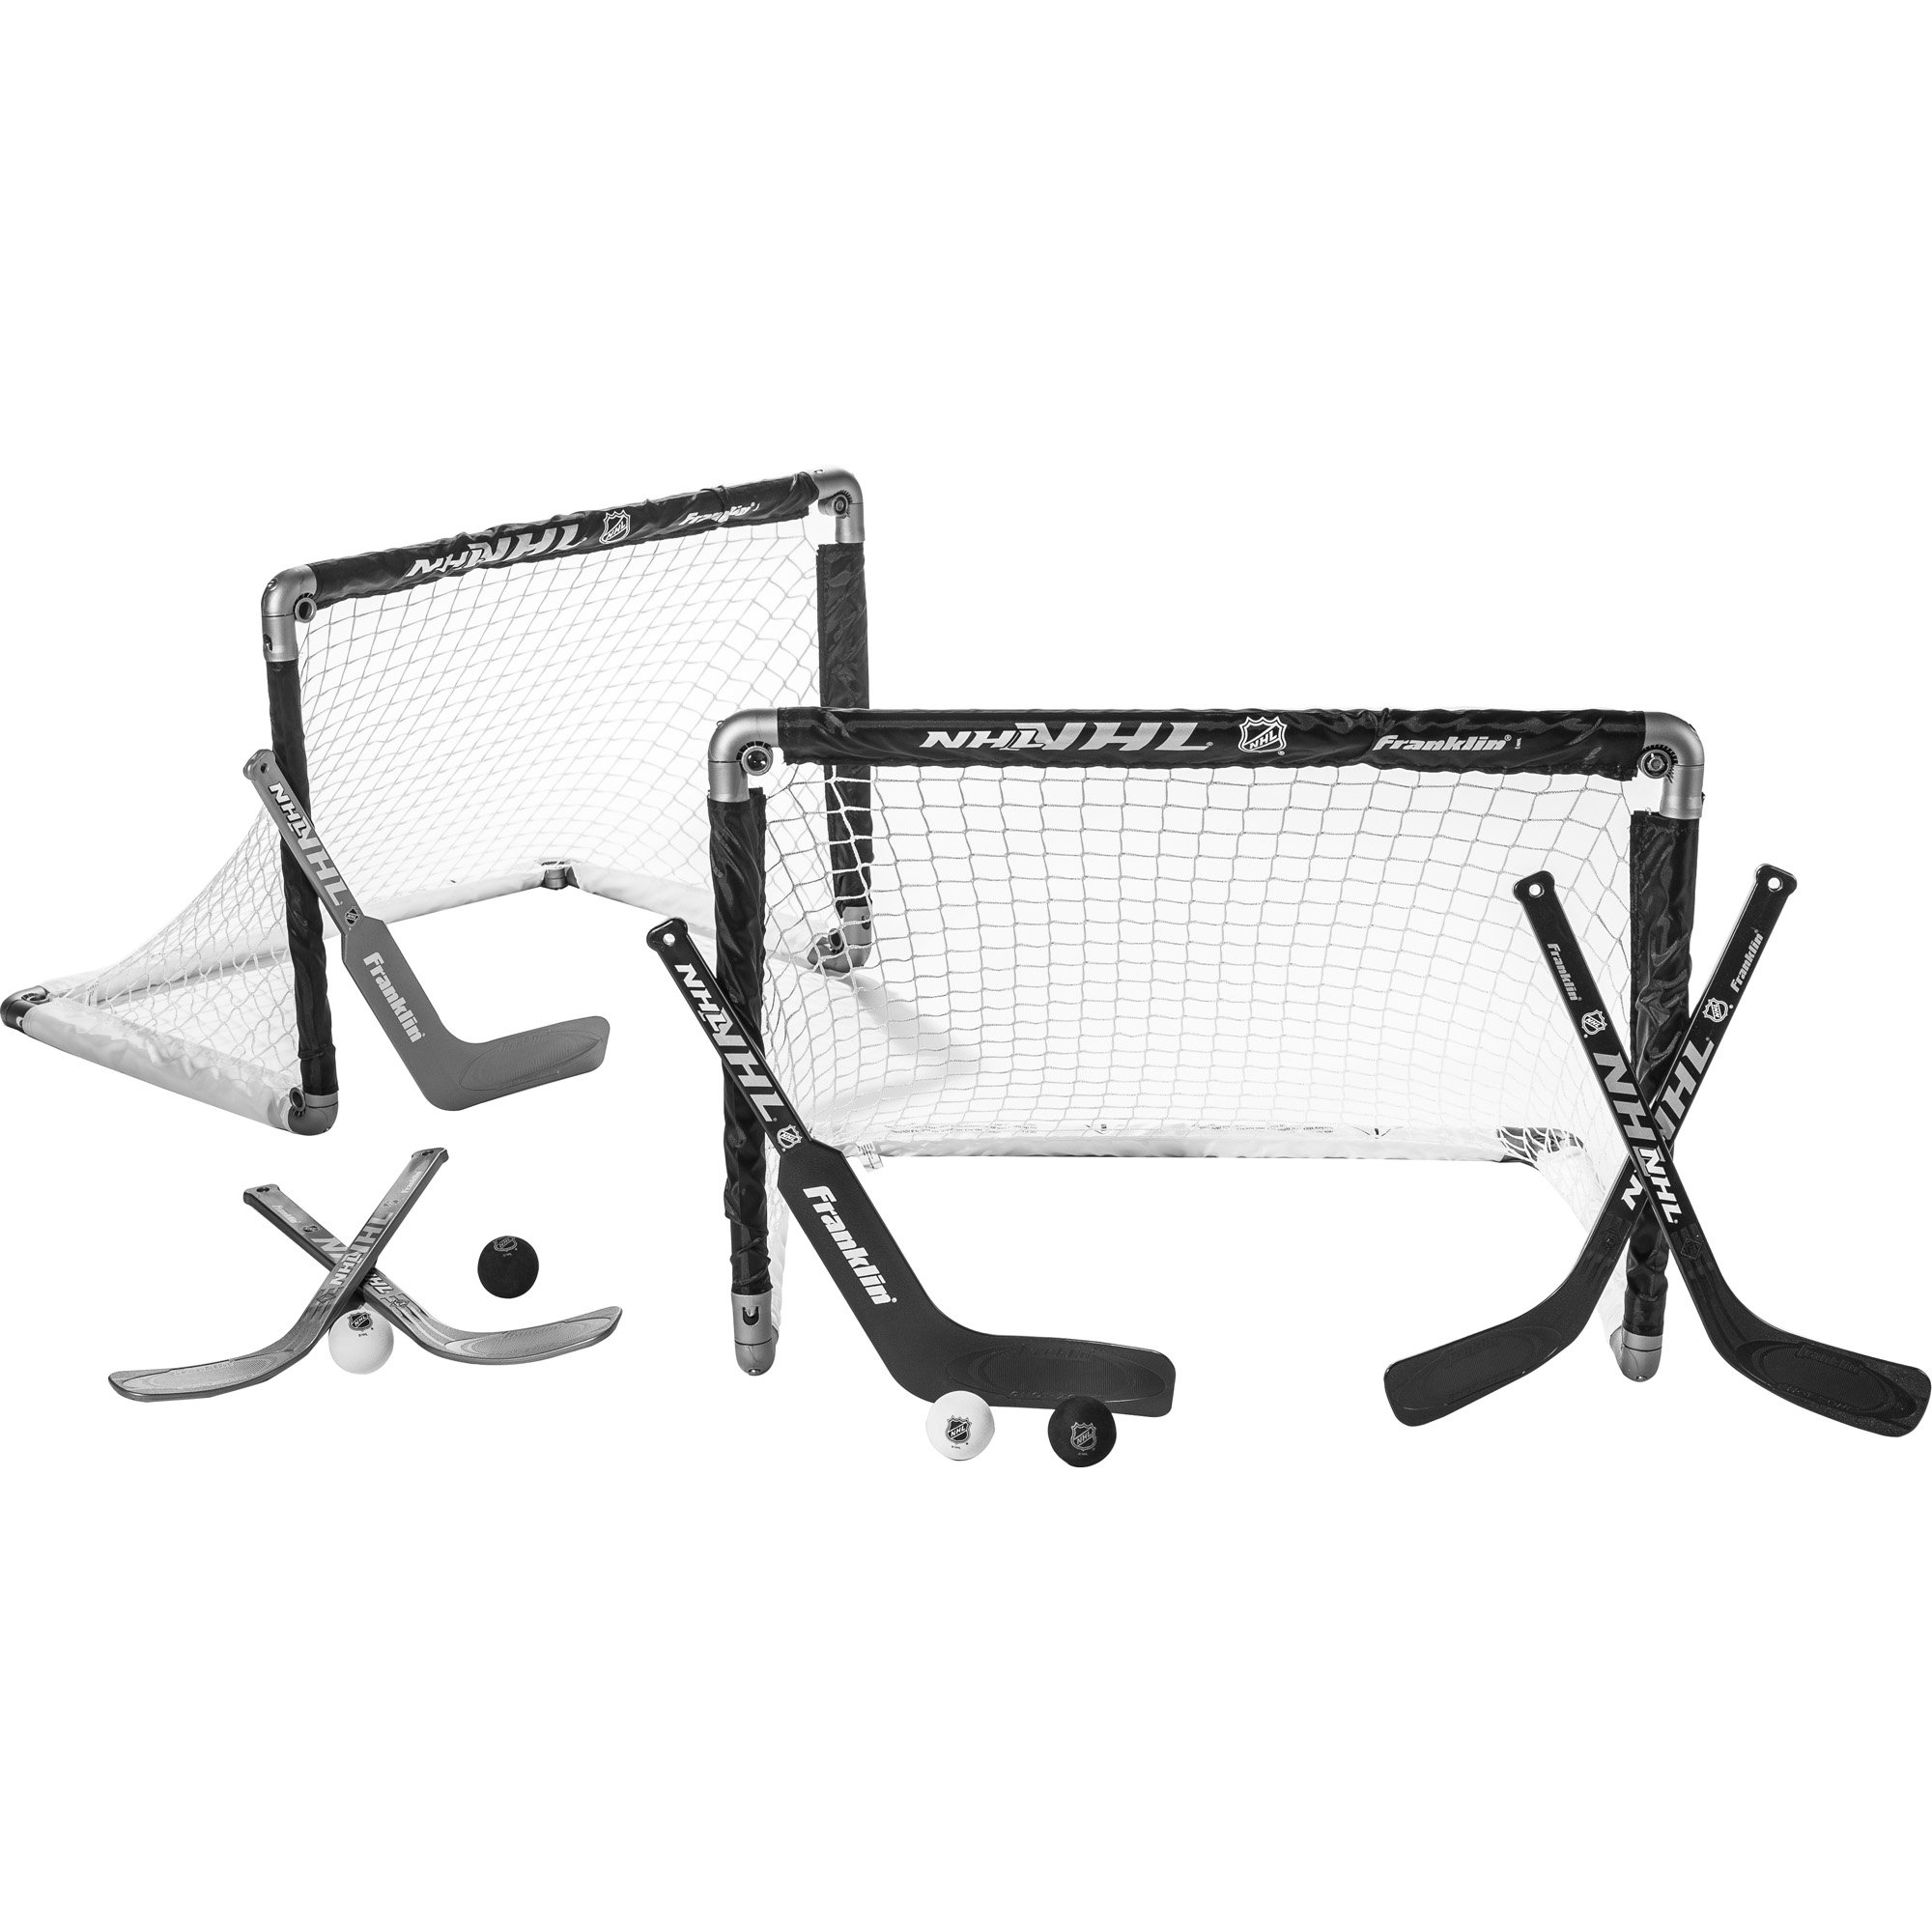 Franklin Sports Mini Hockey Goal Set of 2 - Play